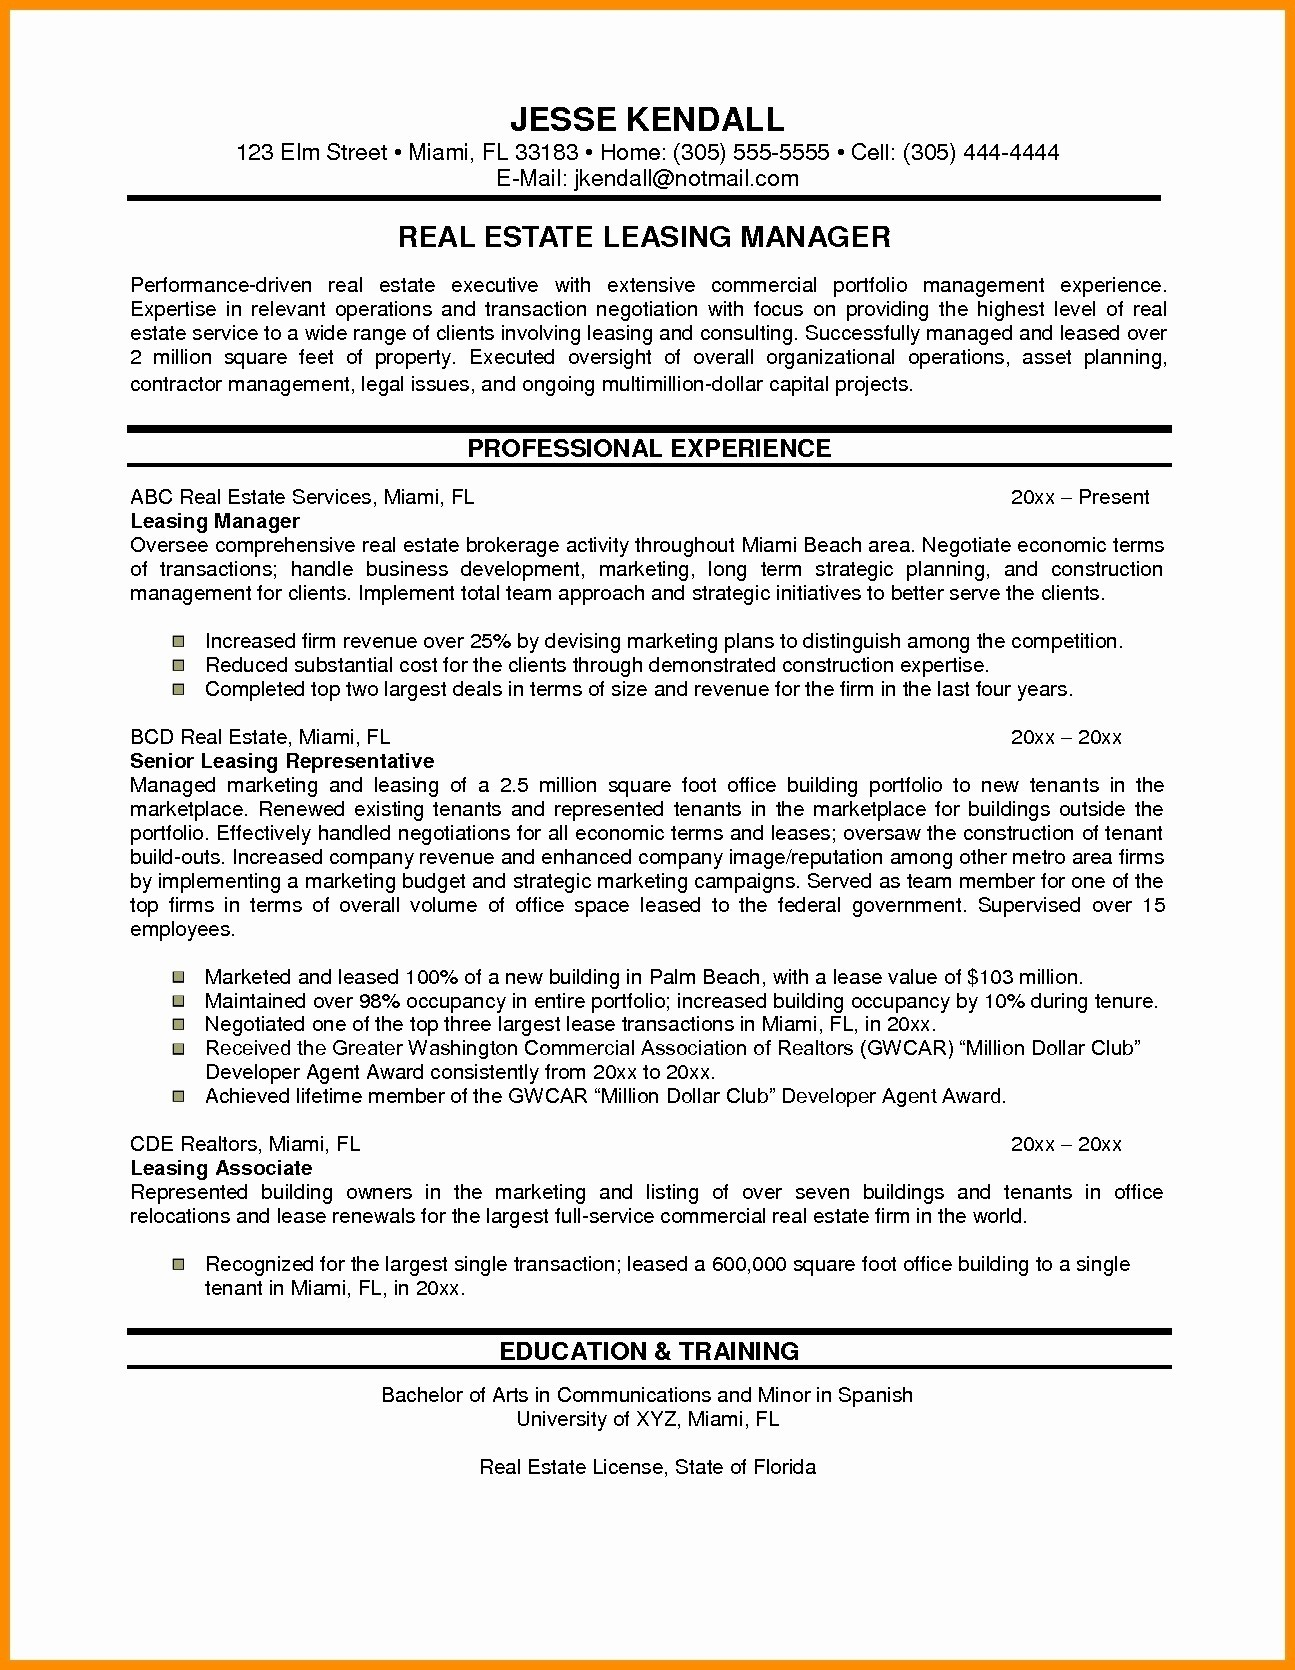 Performance Resume Example - Resume for Sales Executive In Real Estate Resume Resume Examples